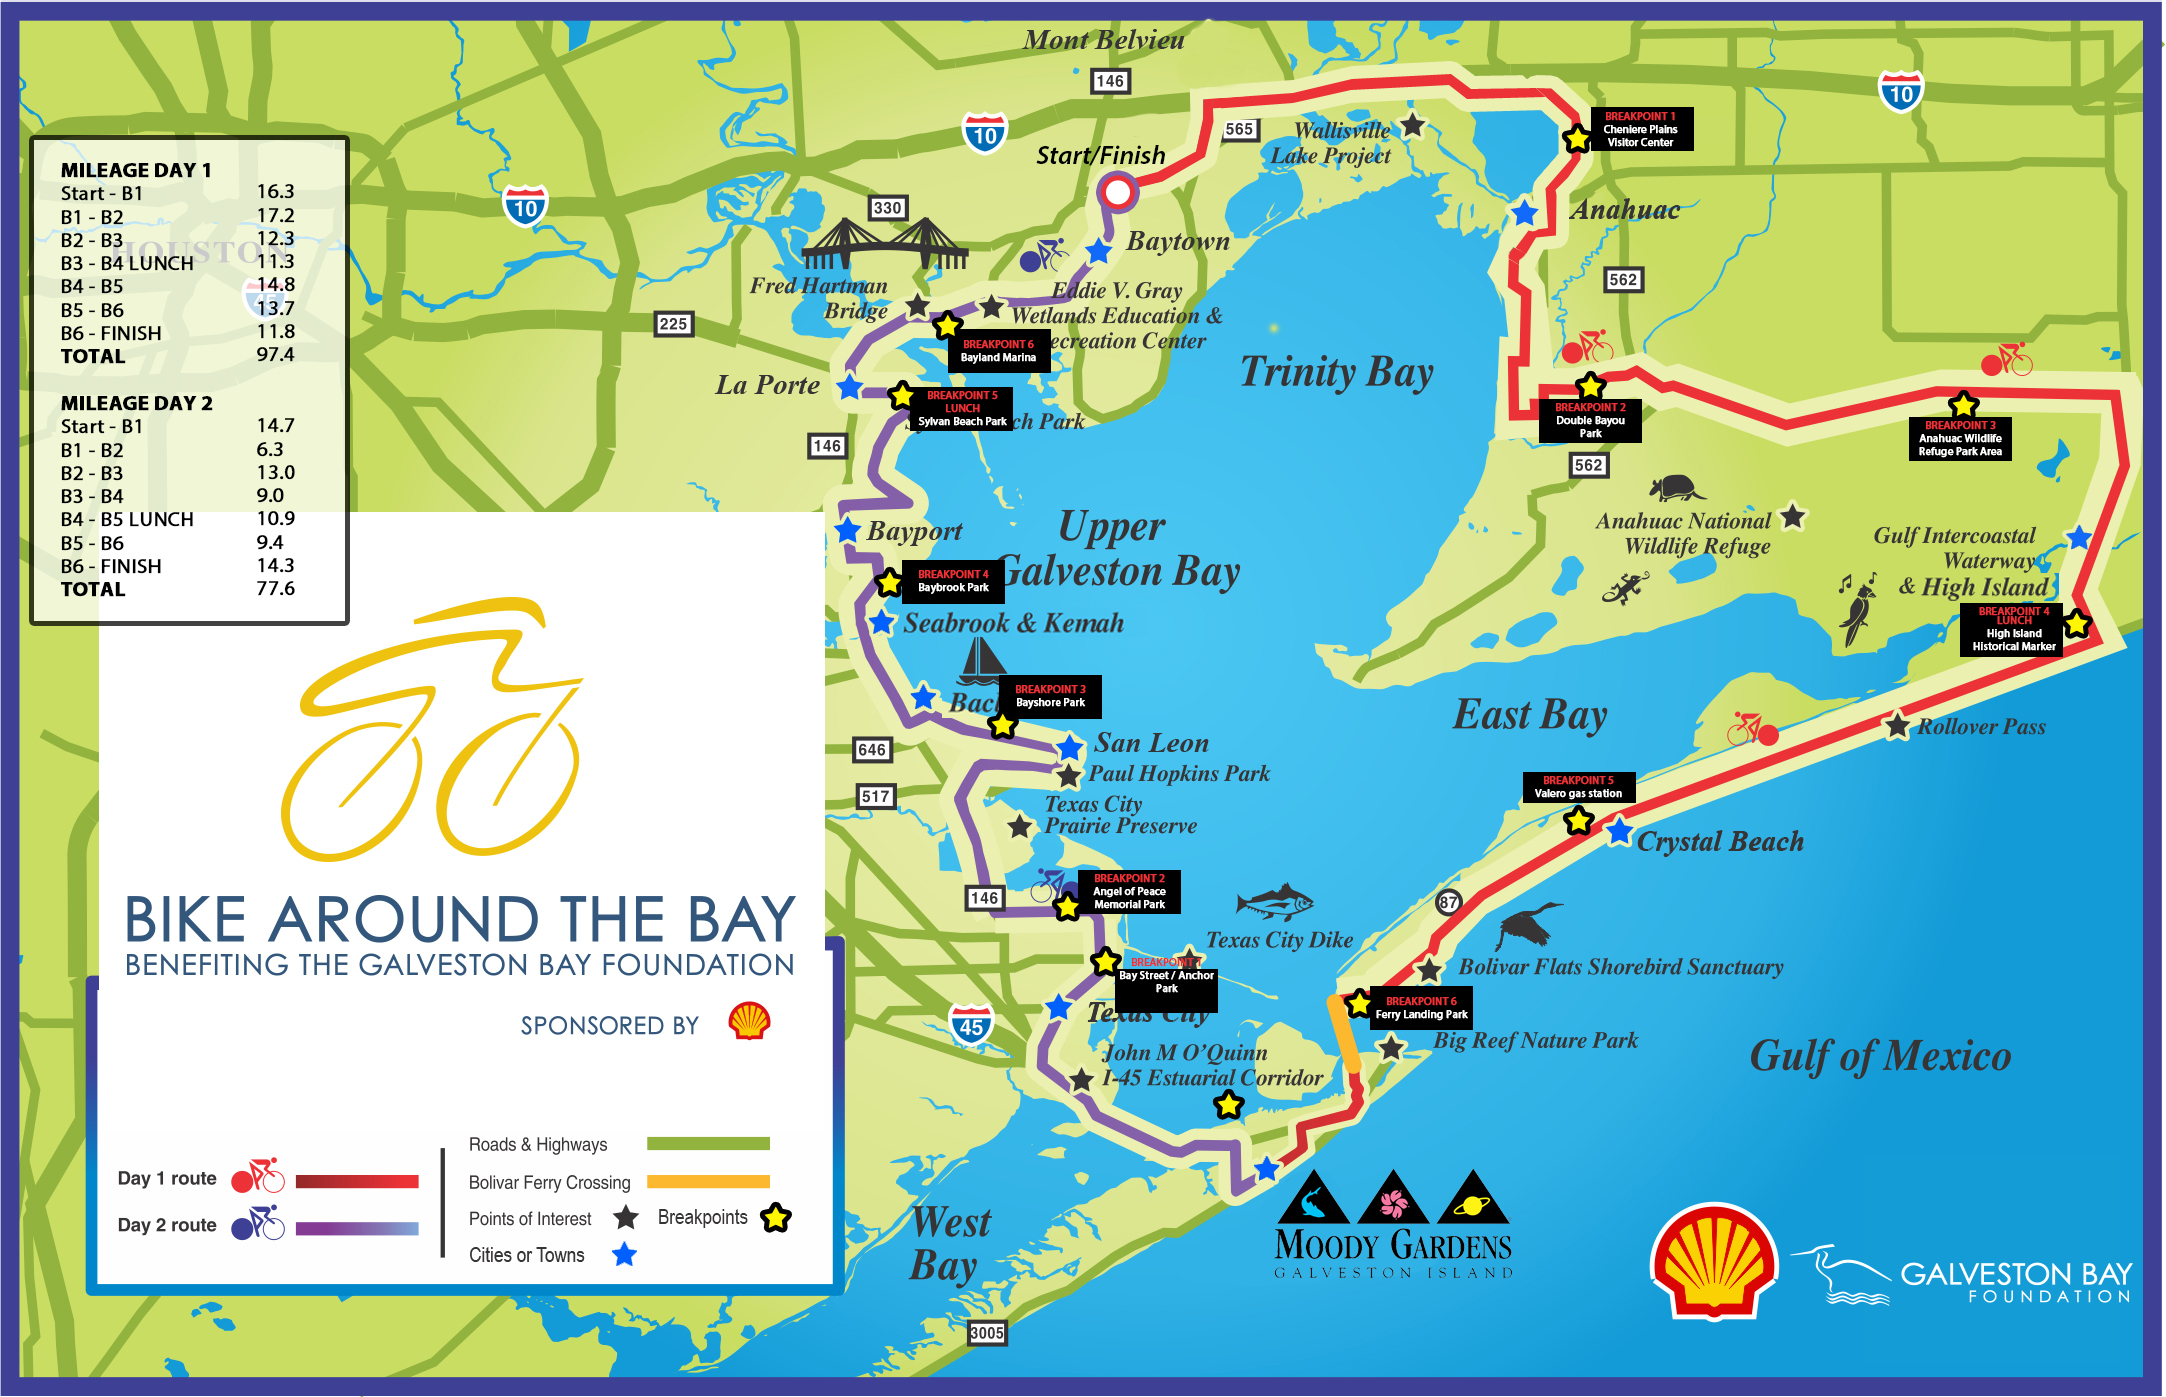 Bike Around the Bay 2018: Routes & Maps - Galveston Bay Foundation on spindletop tx map, southwest houston tx map, port o'connor tx map, collegeport tx map, midtown houston tx map, pearland tx map, santa fe tx map, bunker hill village tx map, southside place tx map, shiro tx map, piney point village tx map, prairie view tx map, conroe tx map, morgan's point tx map, seabrook tx map, clear lake tx zip code map, spring tx map, texas city tx map, galveston tx map, clear lake shores tx map,